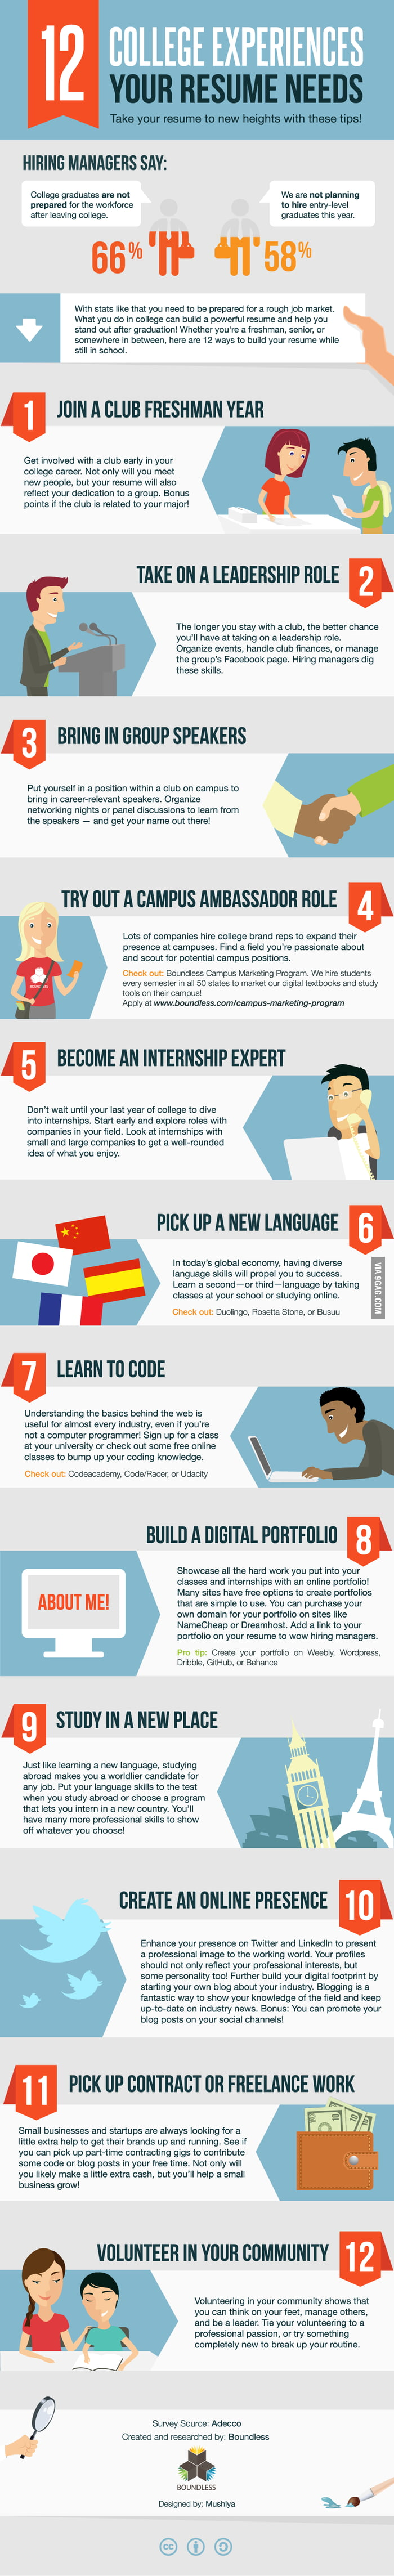 how to build up your resume 9gag